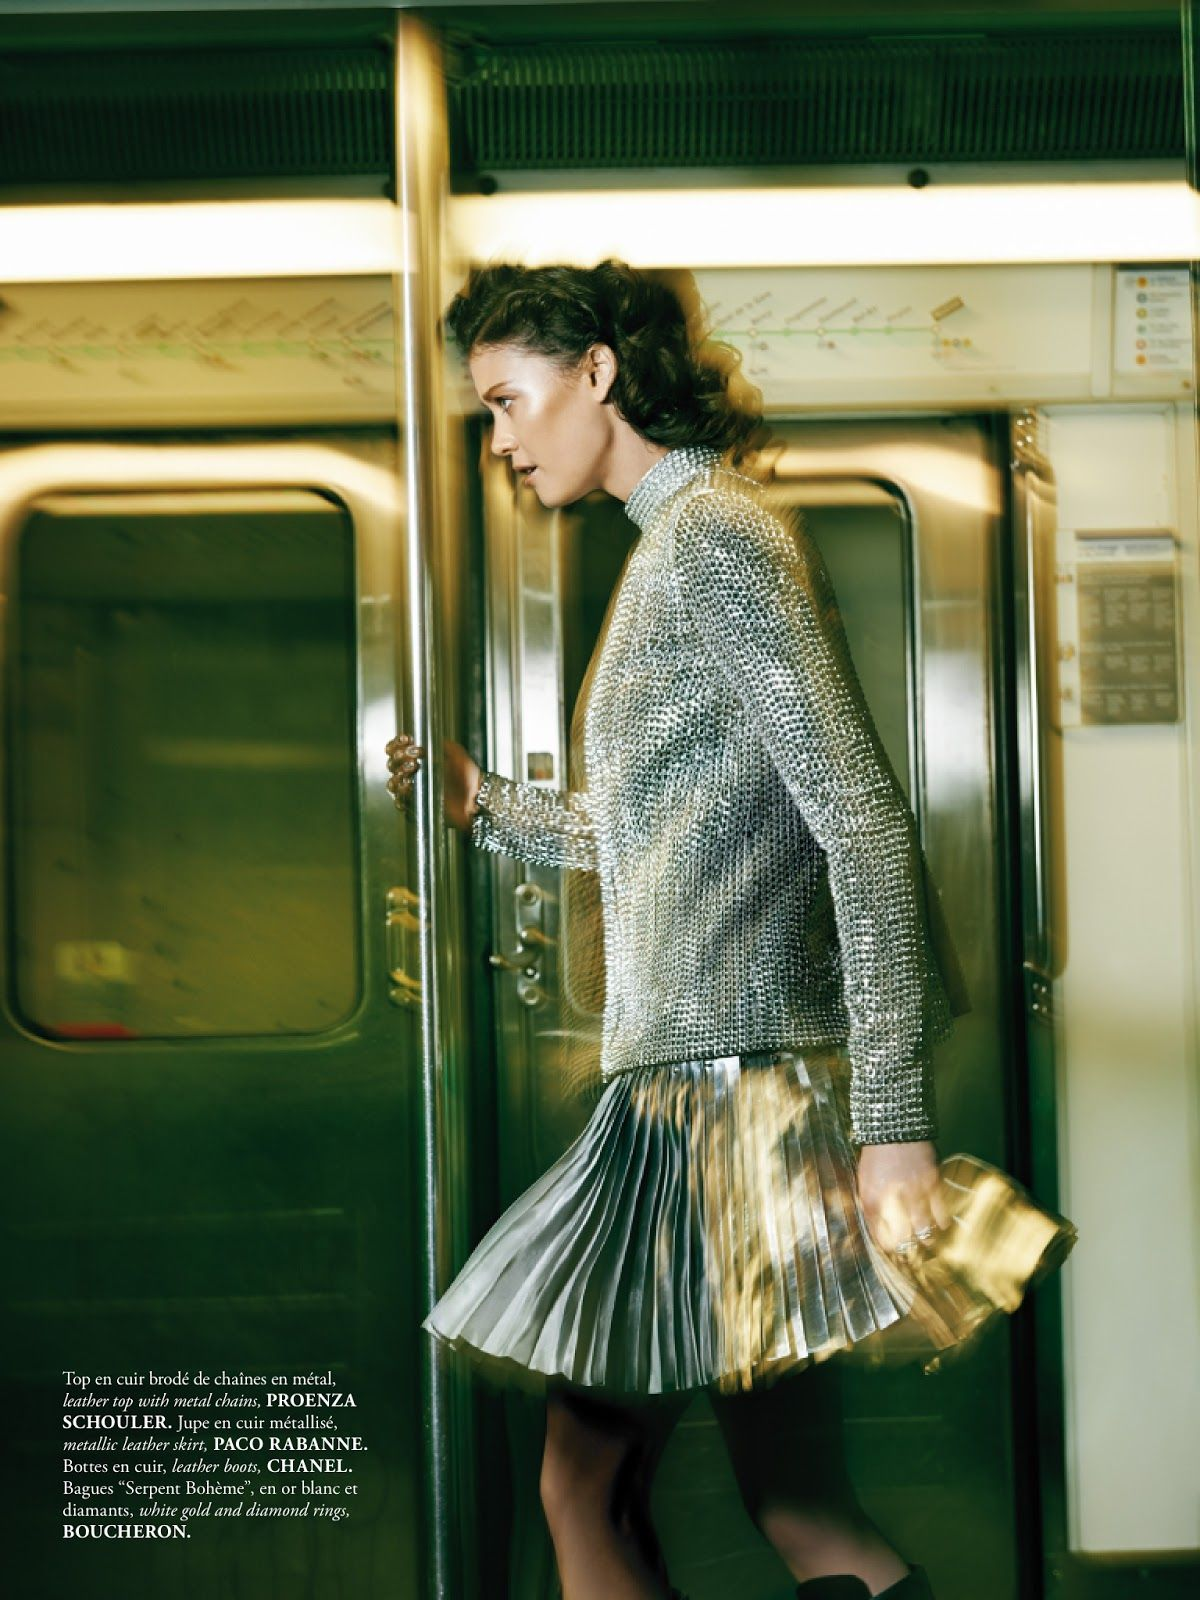 visual optimism; fashion editorials, shows, campaigns & more!: downtown: diana moldovan by sonia sieff for madame air france august/september 2013